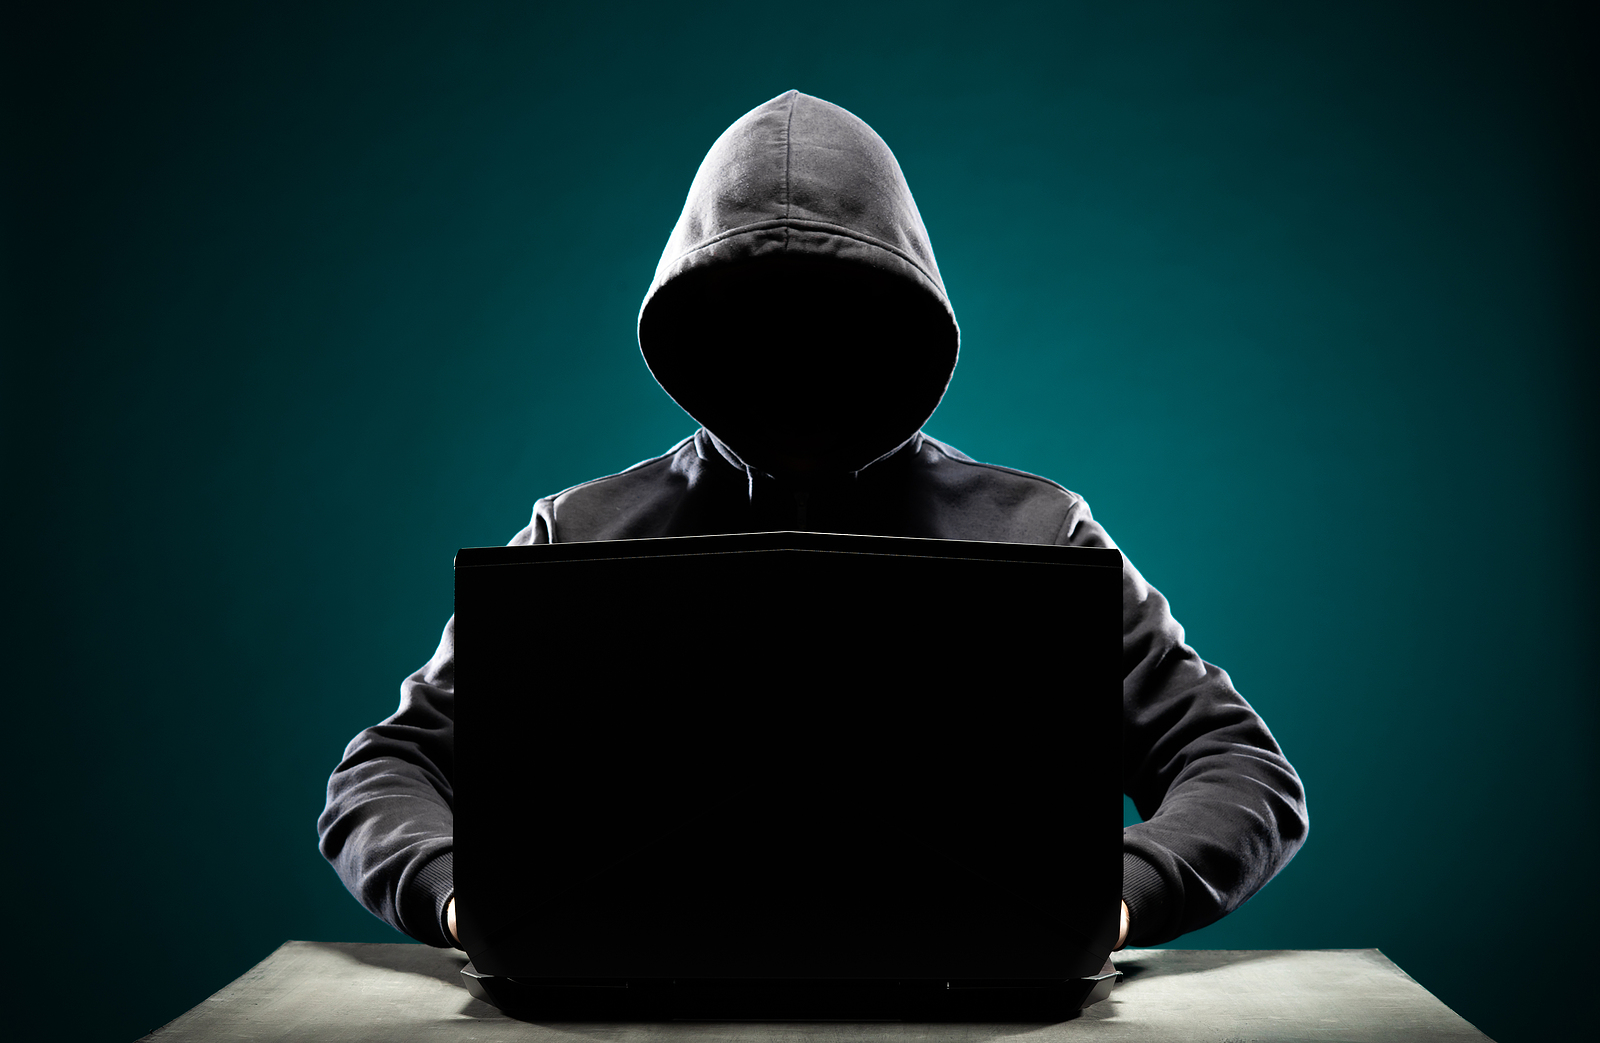 Computer-Hacker-In-Hoodie-Sweater-with-Obscured-Face-Using-Laptop